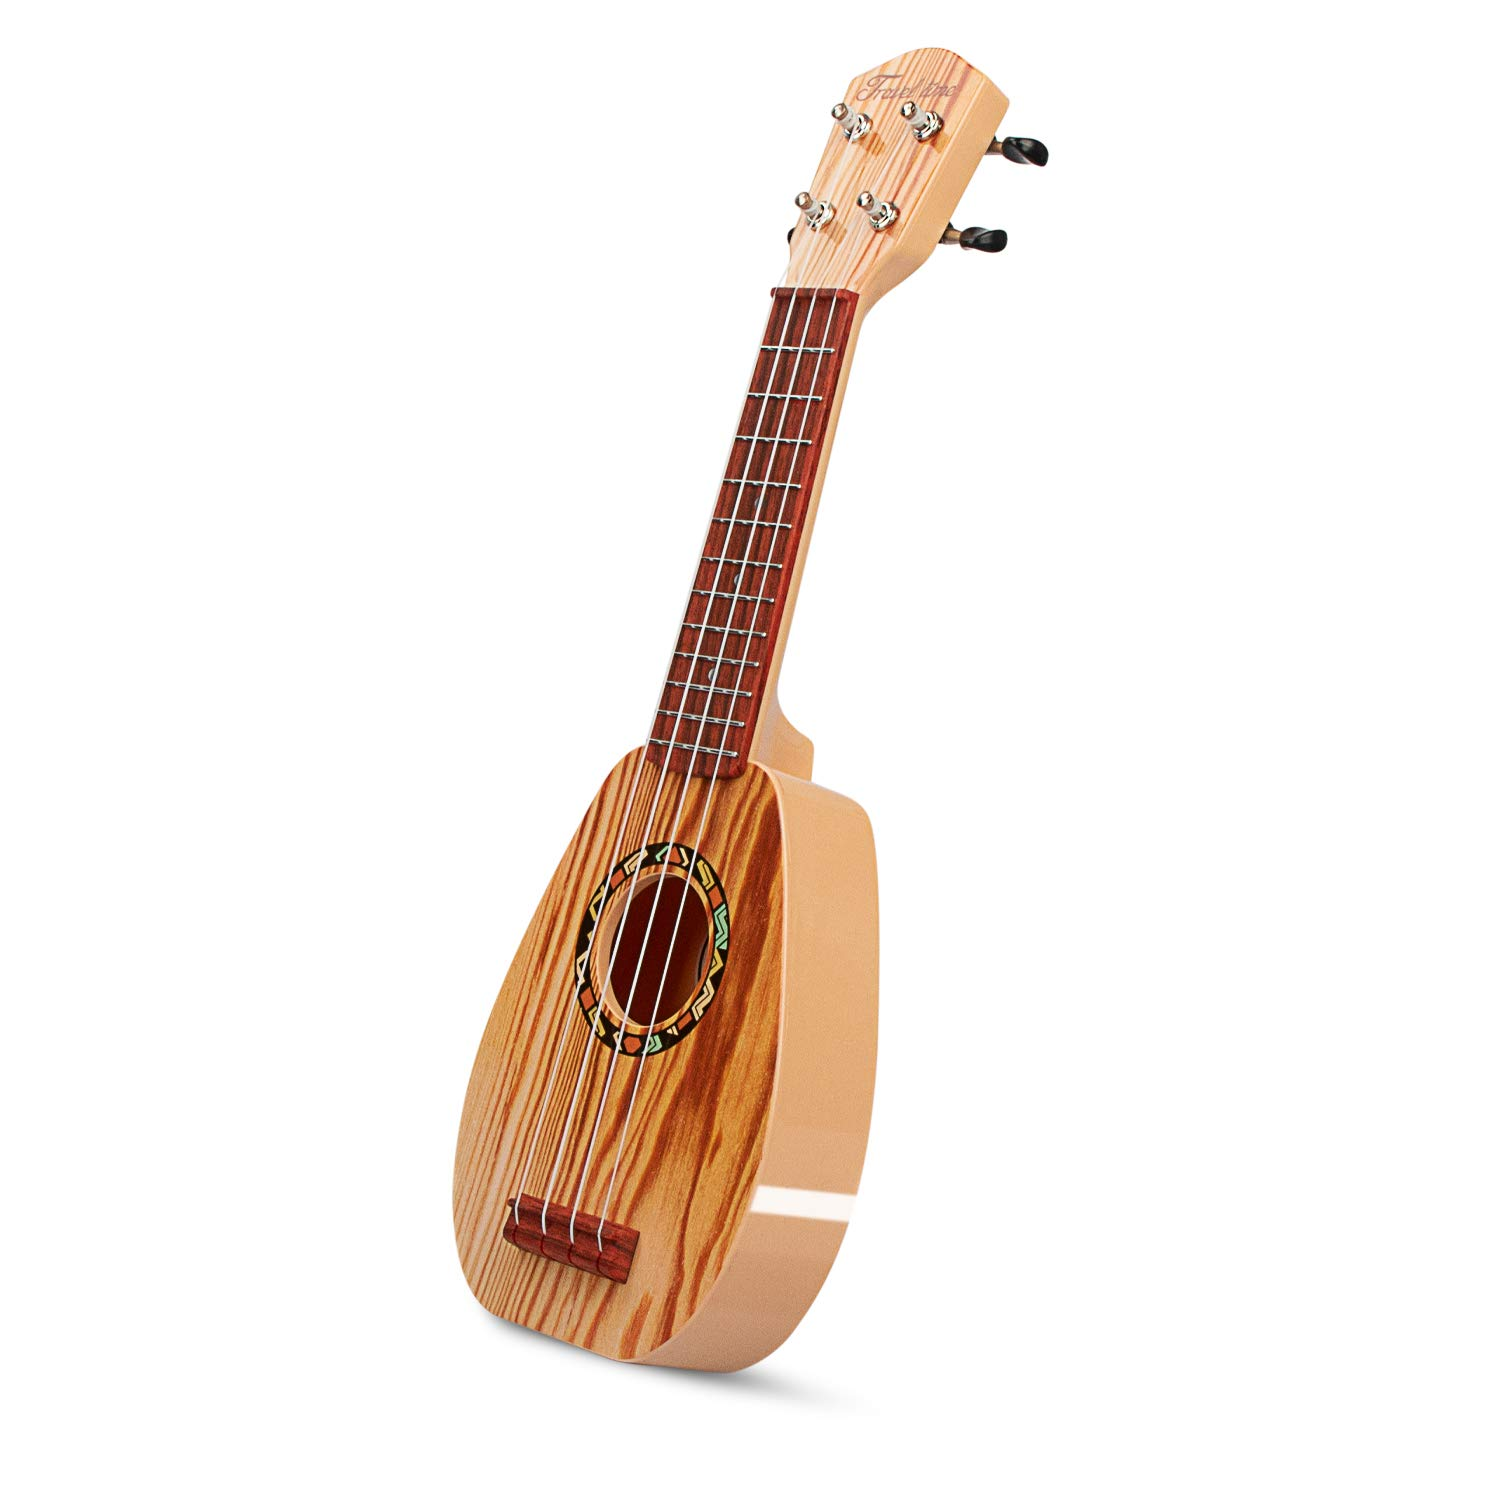 aPerfectLife 17'' Kids Ukulele Guitar Toy 4 Strings Mini Guitar Children Musical Instruments Educational Learning Toys with Picks and Strap for Toddler Kids Boys Girls Beginner Starter (Wooden)